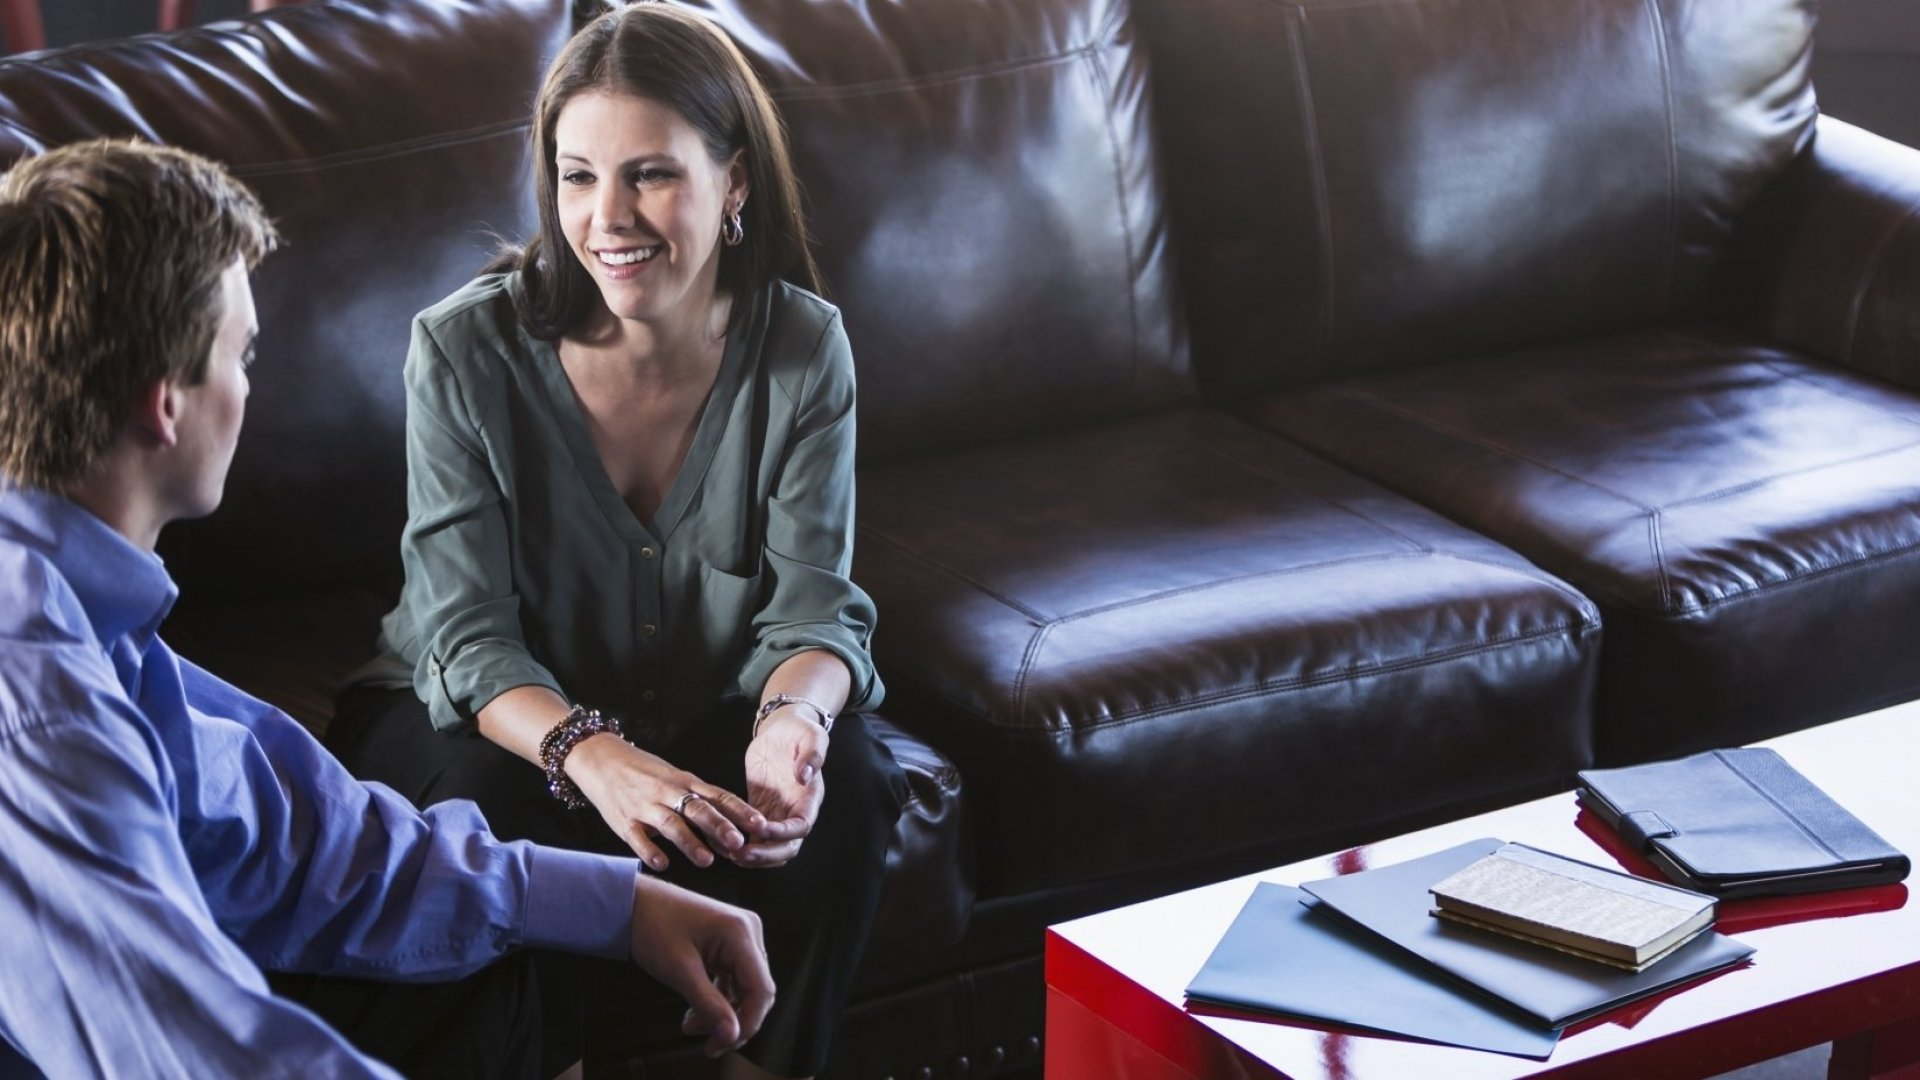 All Job Interviews Should Include This 1 Question (Unless You Want to Hire the Wrong Person)